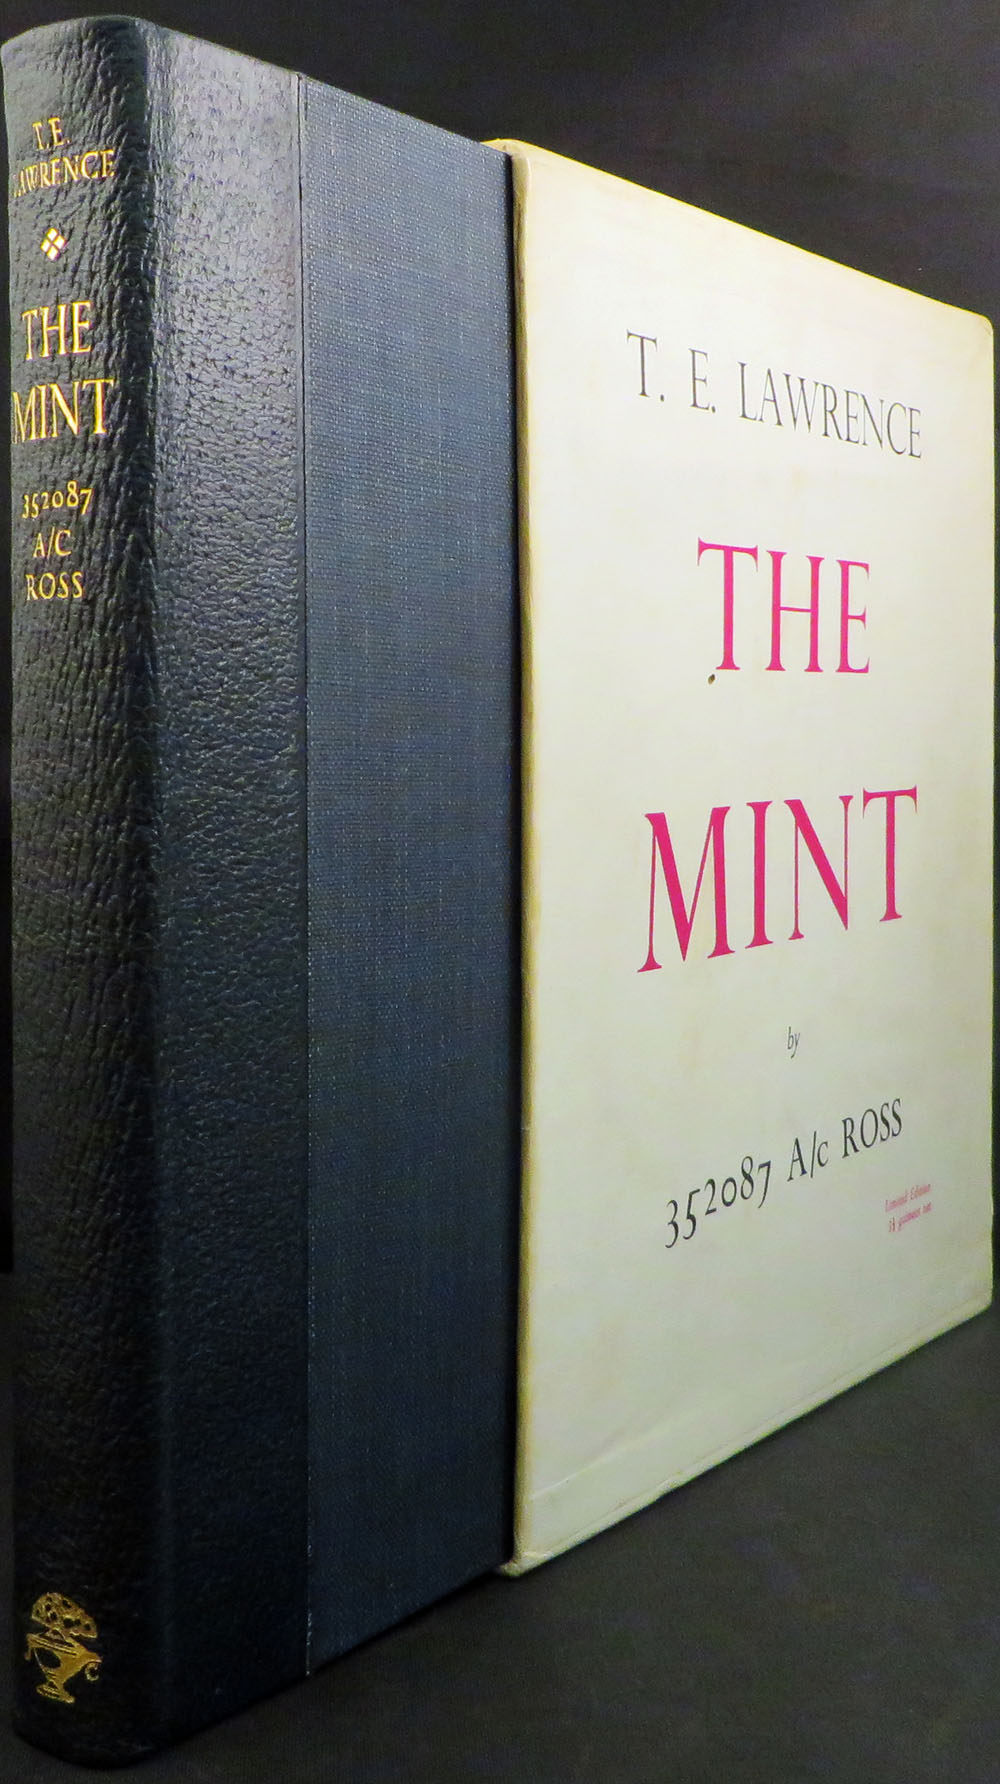 MINT: A day-book of the R.A.F. Depot between August and December 1922 with later notes by 352087 A/C Ross. T. E. Lawrence.